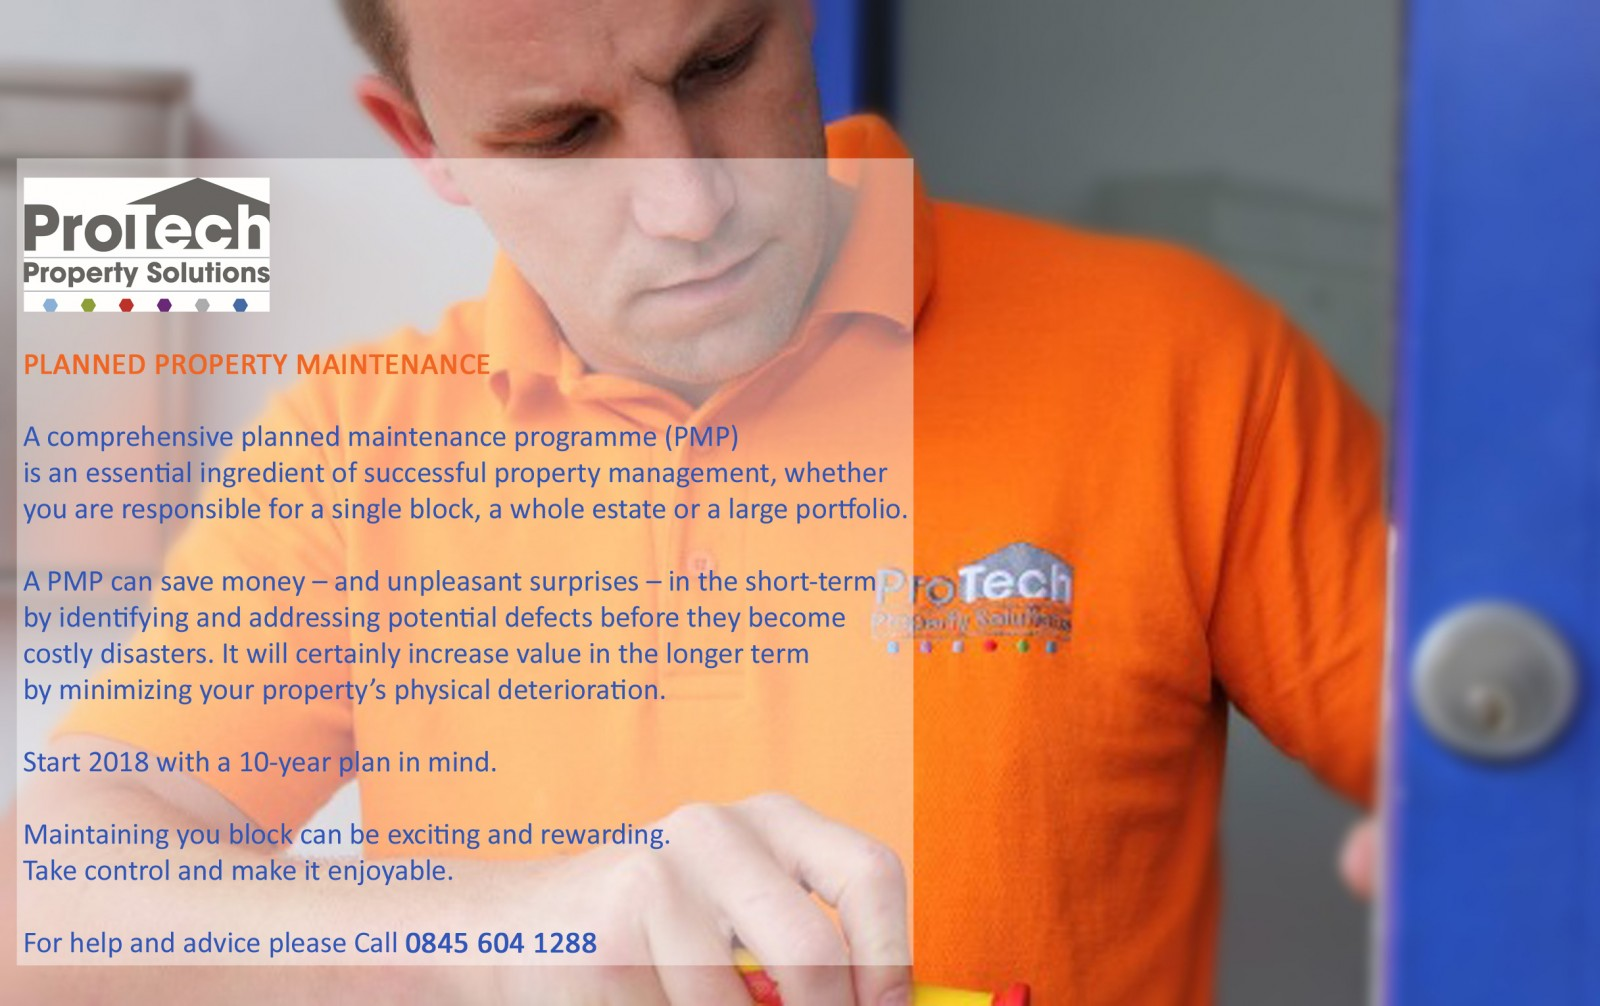 Planned Property Maintenance Protech Property Solutions